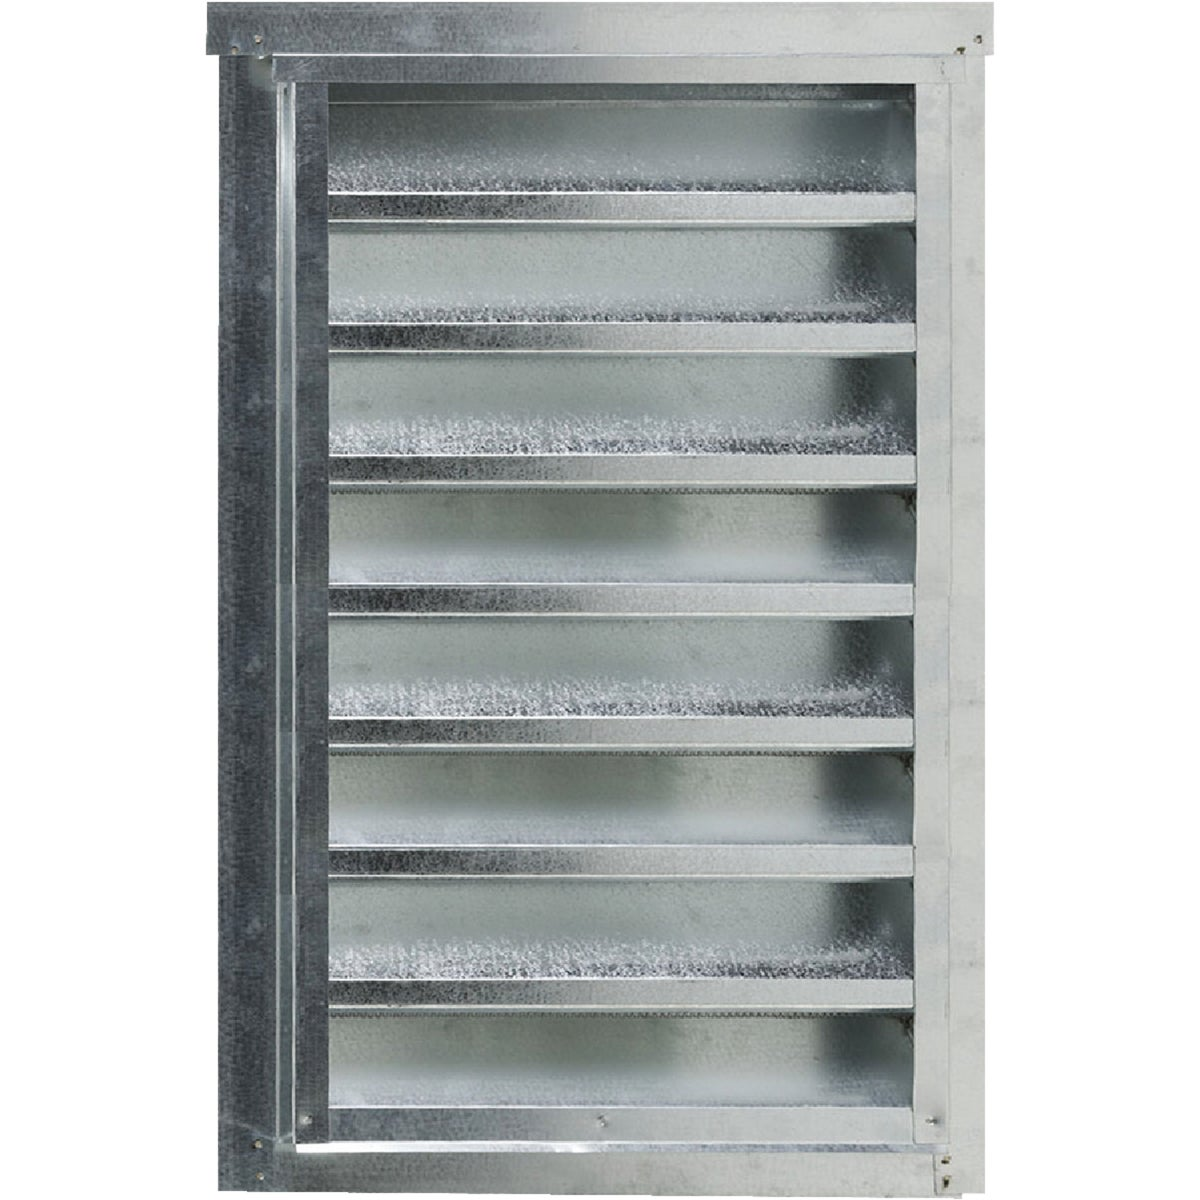 14X24 GALV ATTIC VENT - 553250 by Noll/norwesco Llc